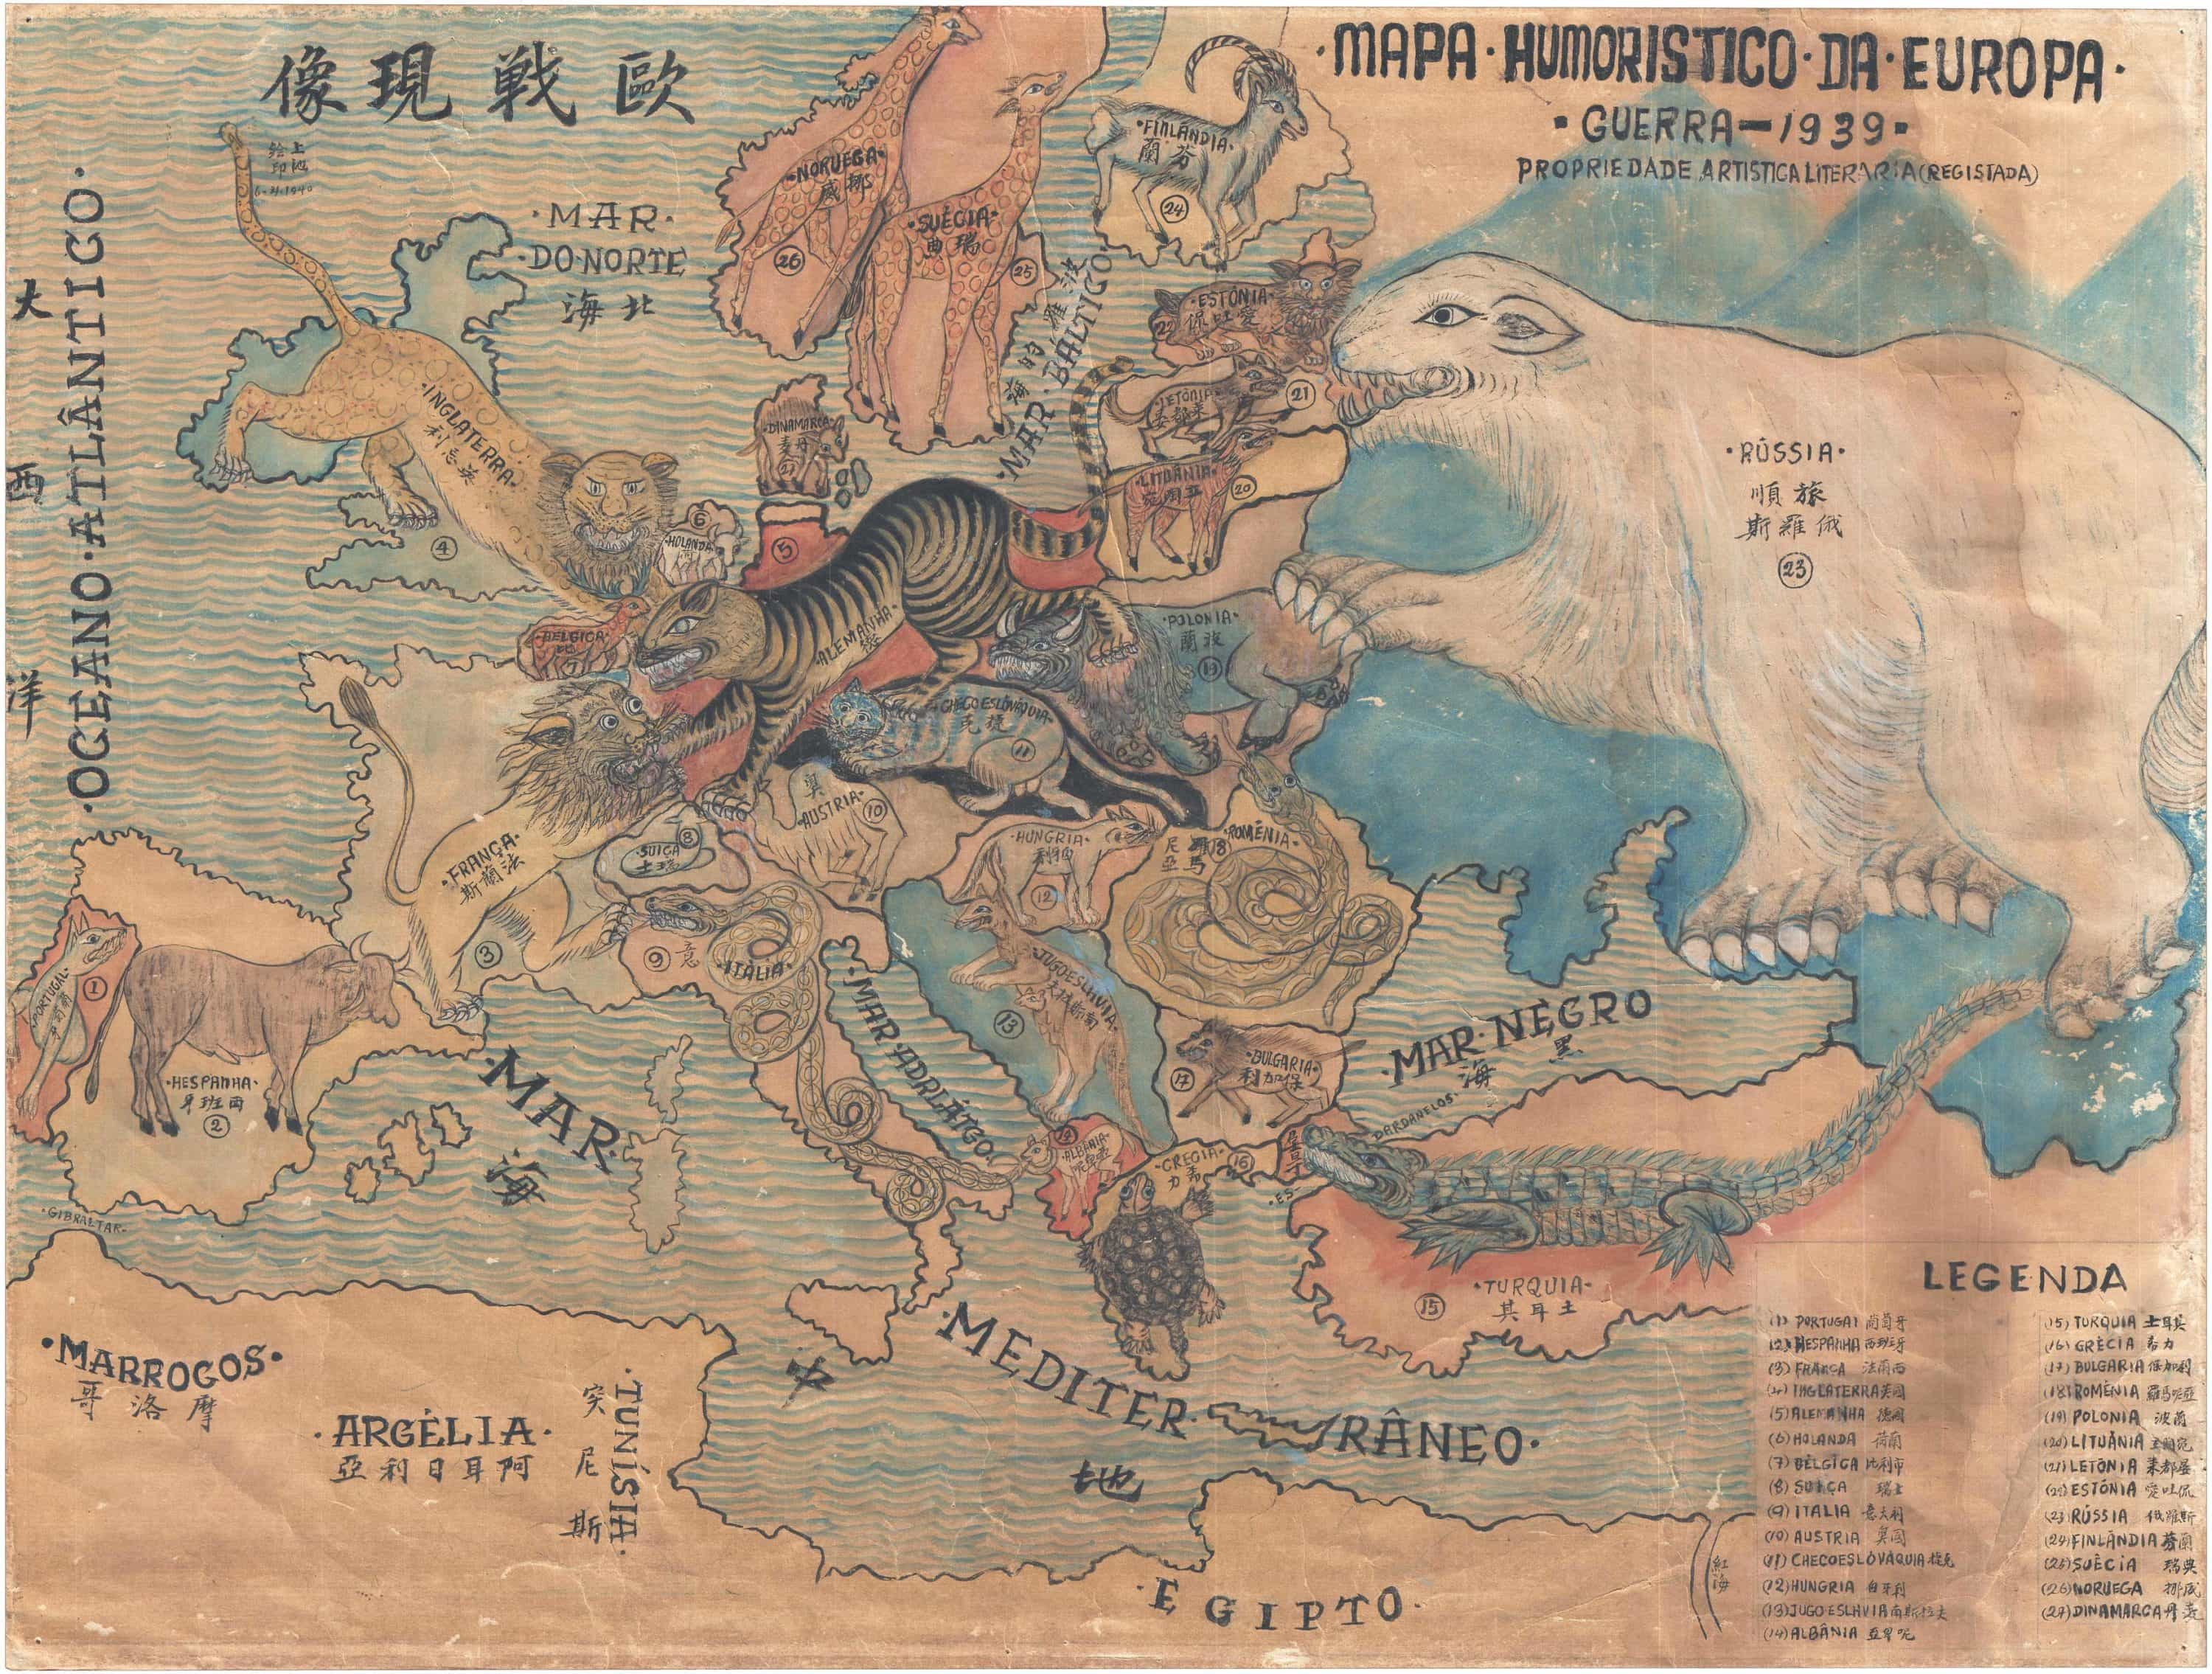 Unique Manuscript Zoomorphic Map Of Europe In Chinese And